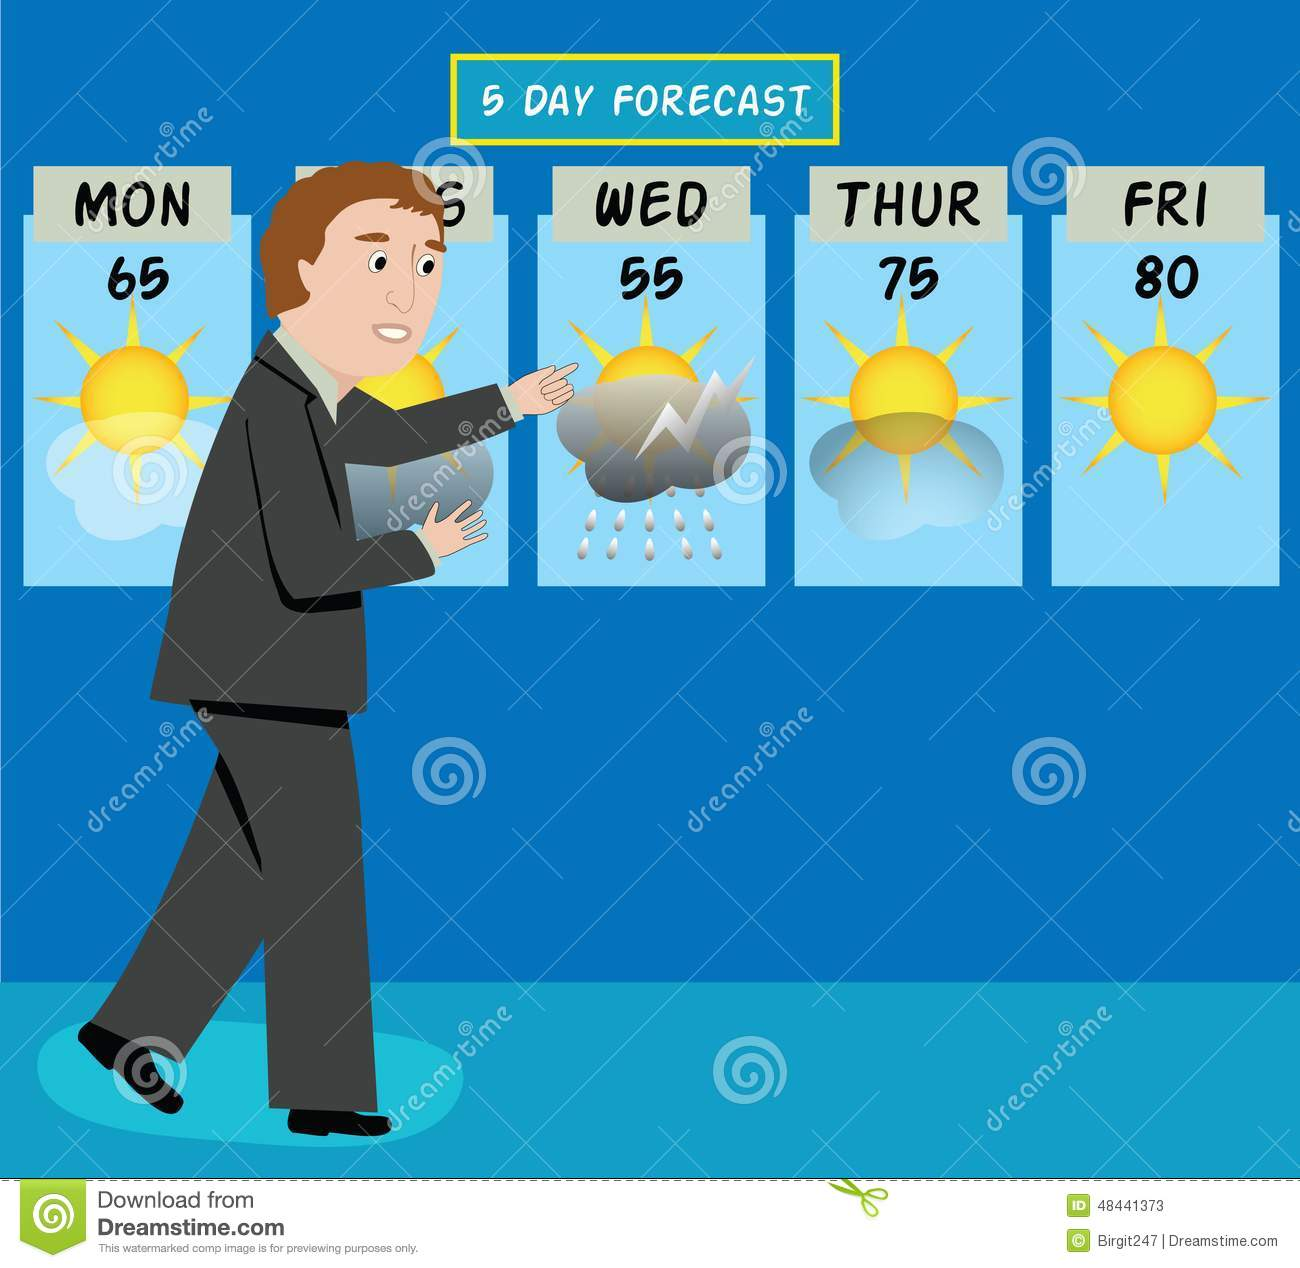 Weatherman clipart - Clipground